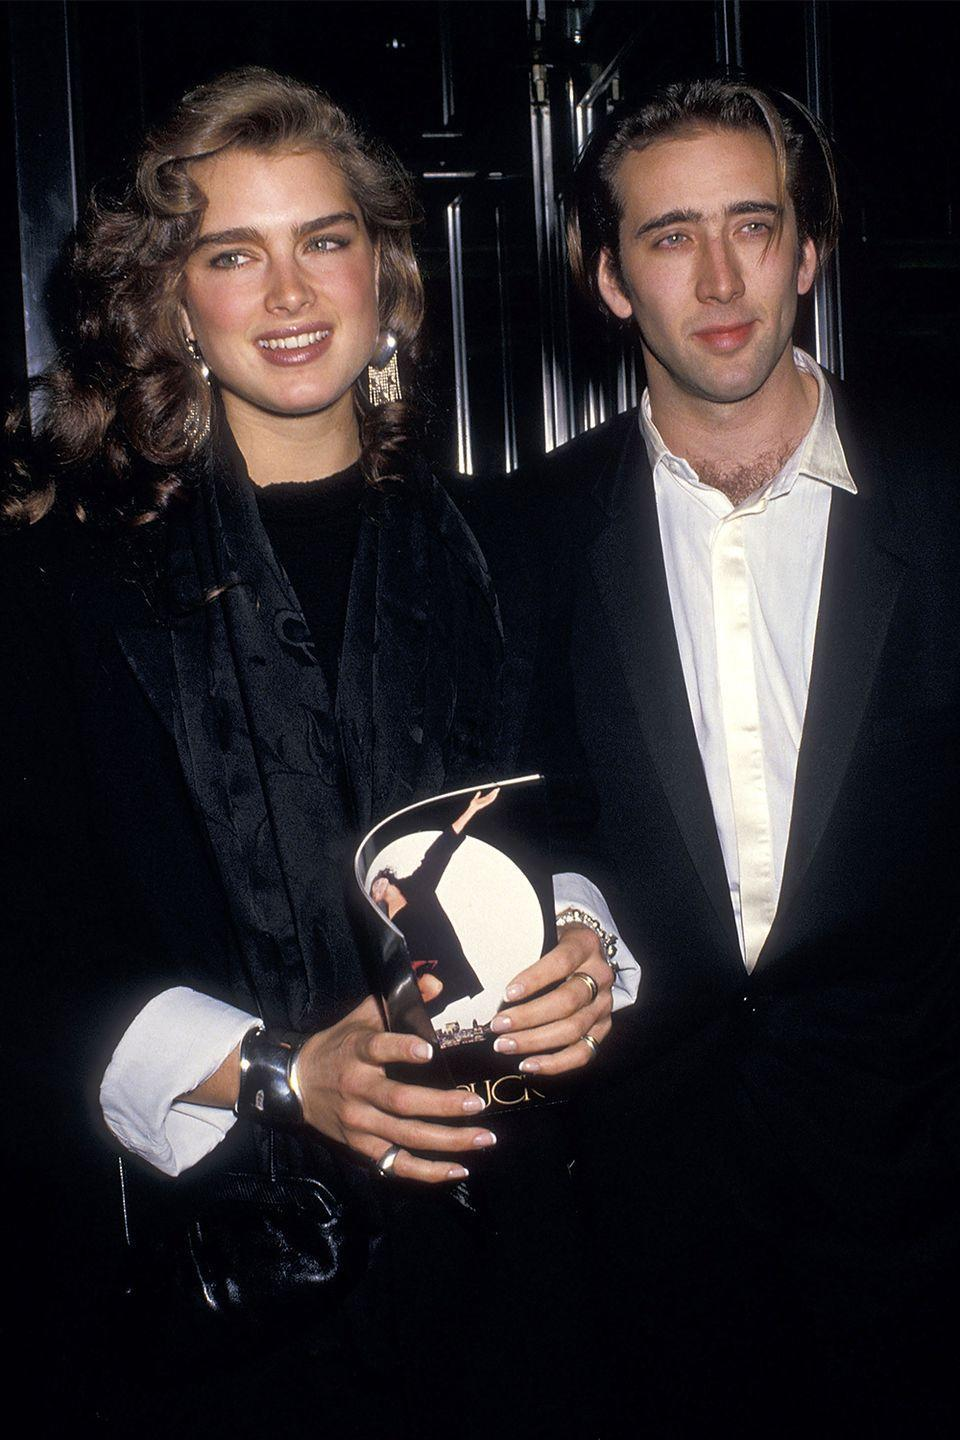 """<p>The model-slash-actress was rumored to be dating Nicolas Cage in 1987 when she was photographed attending the premiere of Cage's breakout film, <em>Moonstruck</em>. People believed their <a href=""""http://www.complex.com/pop-culture/2012/02/nicolas-cages-10-hottest-hook-ups/9"""" rel=""""nofollow noopener"""" target=""""_blank"""" data-ylk=""""slk:relationship was more serious off the red carpet"""" class=""""link rapid-noclick-resp"""">relationship was more serious off the red carpet</a>, but were confused as to how Shields could have gone from dating <a href=""""http://www.zimbio.com/John+F.+Kennedy+Jr.+Dating+History/articles/-iamQiWr8xD/John+F+Kennedy+Jr+dated+Brooke+Shields"""" rel=""""nofollow noopener"""" target=""""_blank"""" data-ylk=""""slk:JFK, Jr."""" class=""""link rapid-noclick-resp"""">JFK, Jr.</a> to Cage. </p>"""